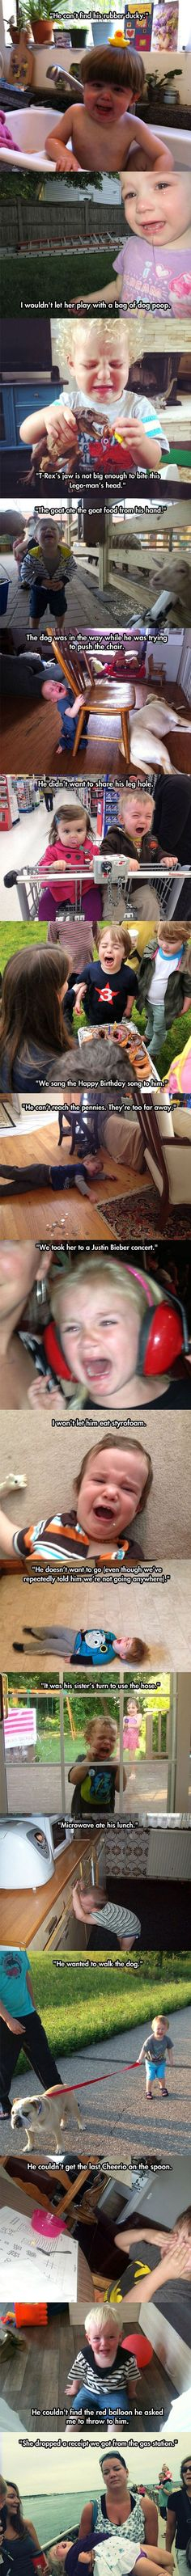 Reasons why kids cry. Oh my gosh the last one!